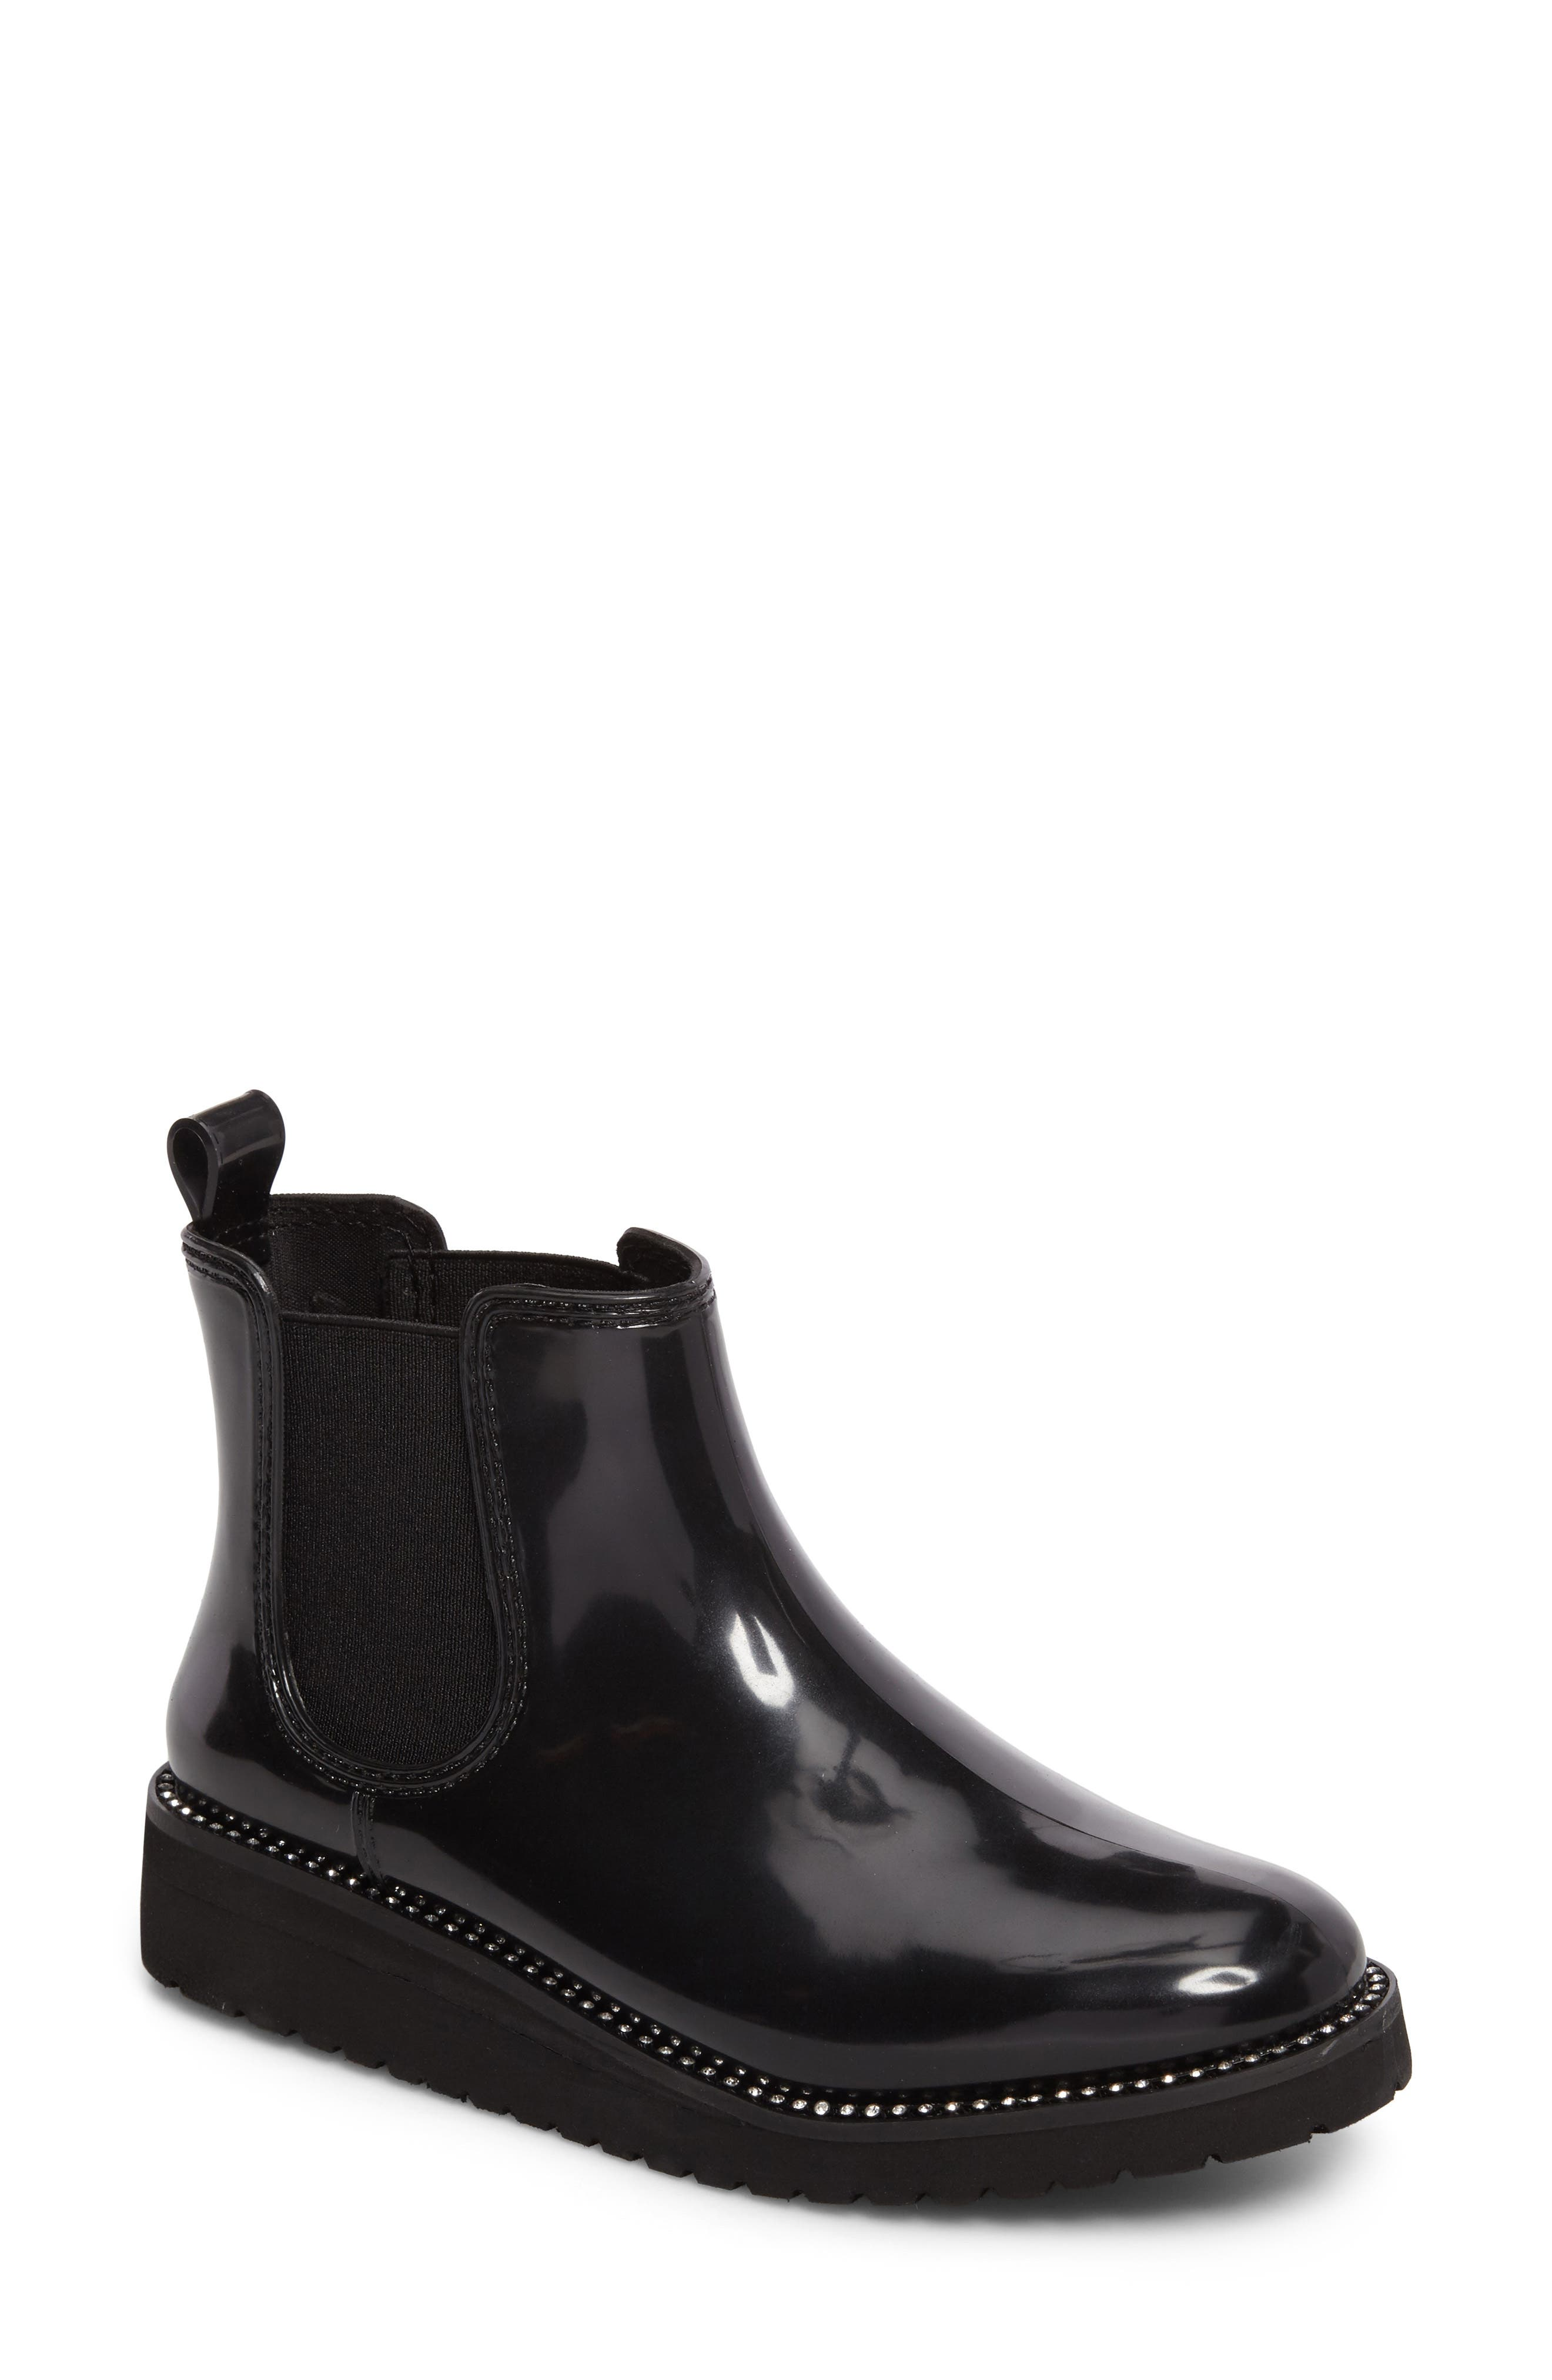 Kerry Waterproof Chelsea Boot,                             Main thumbnail 1, color,                             Black Diamond Welt